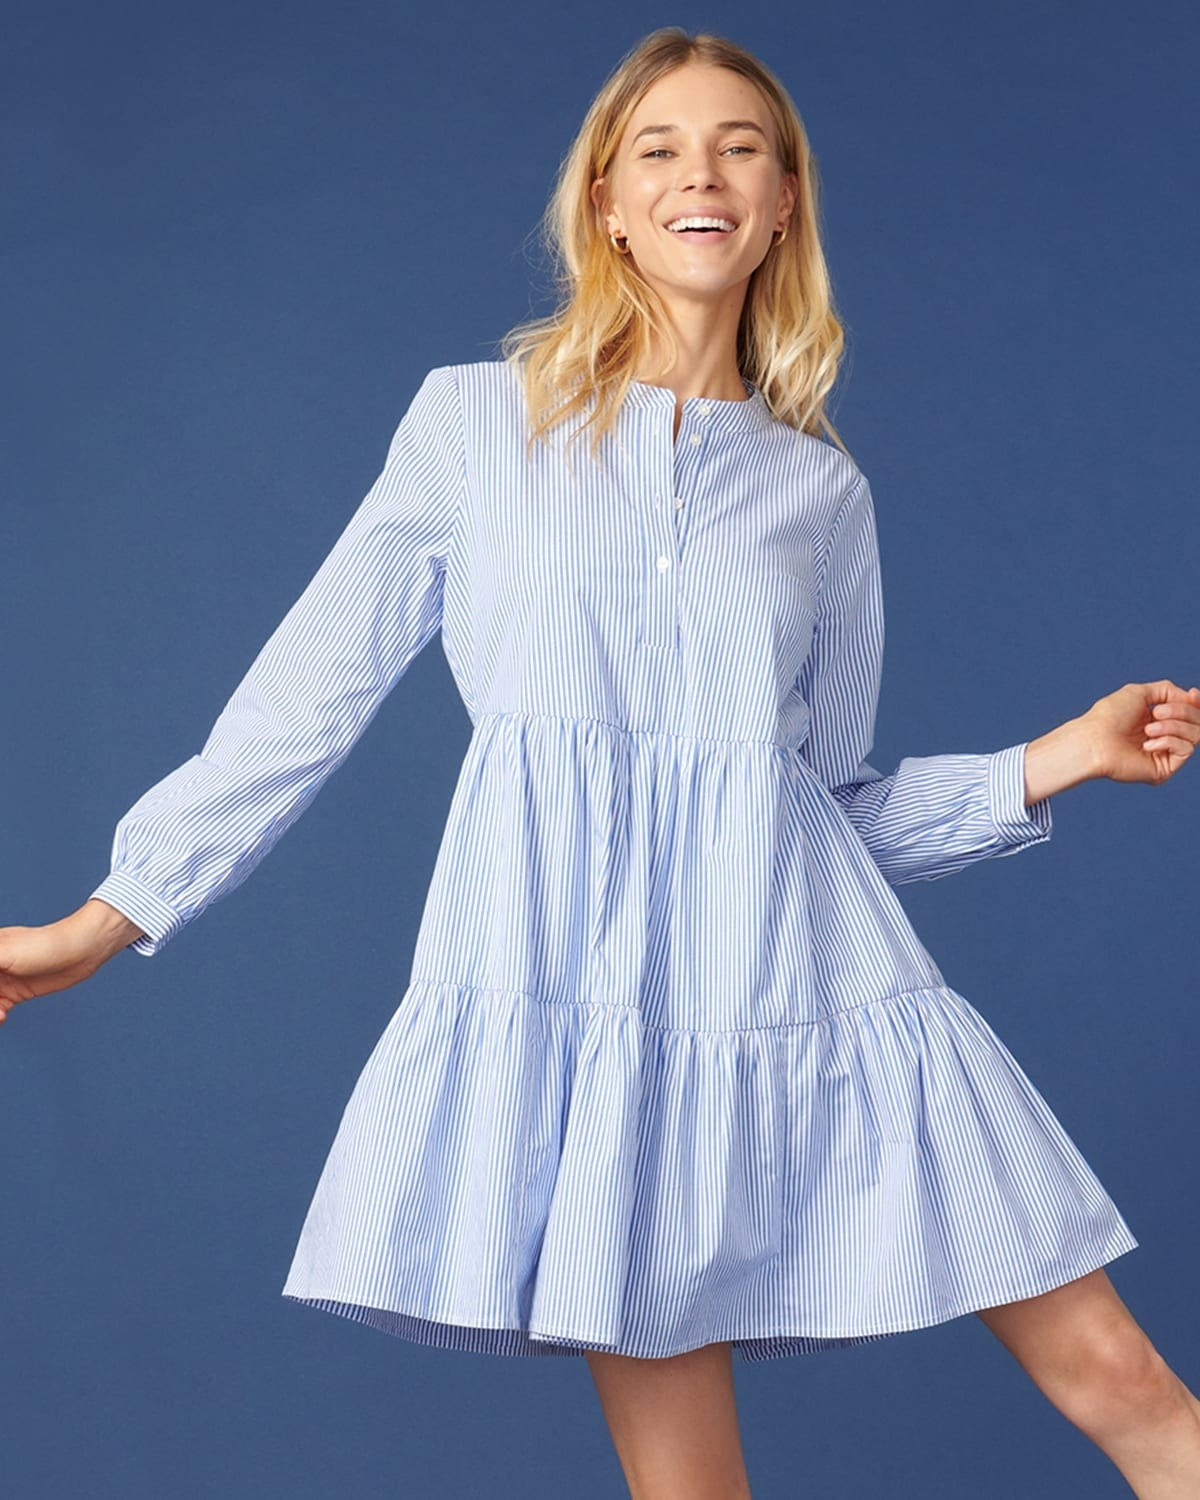 Poplin dress in a blue and white stripe pattern and button up neckline